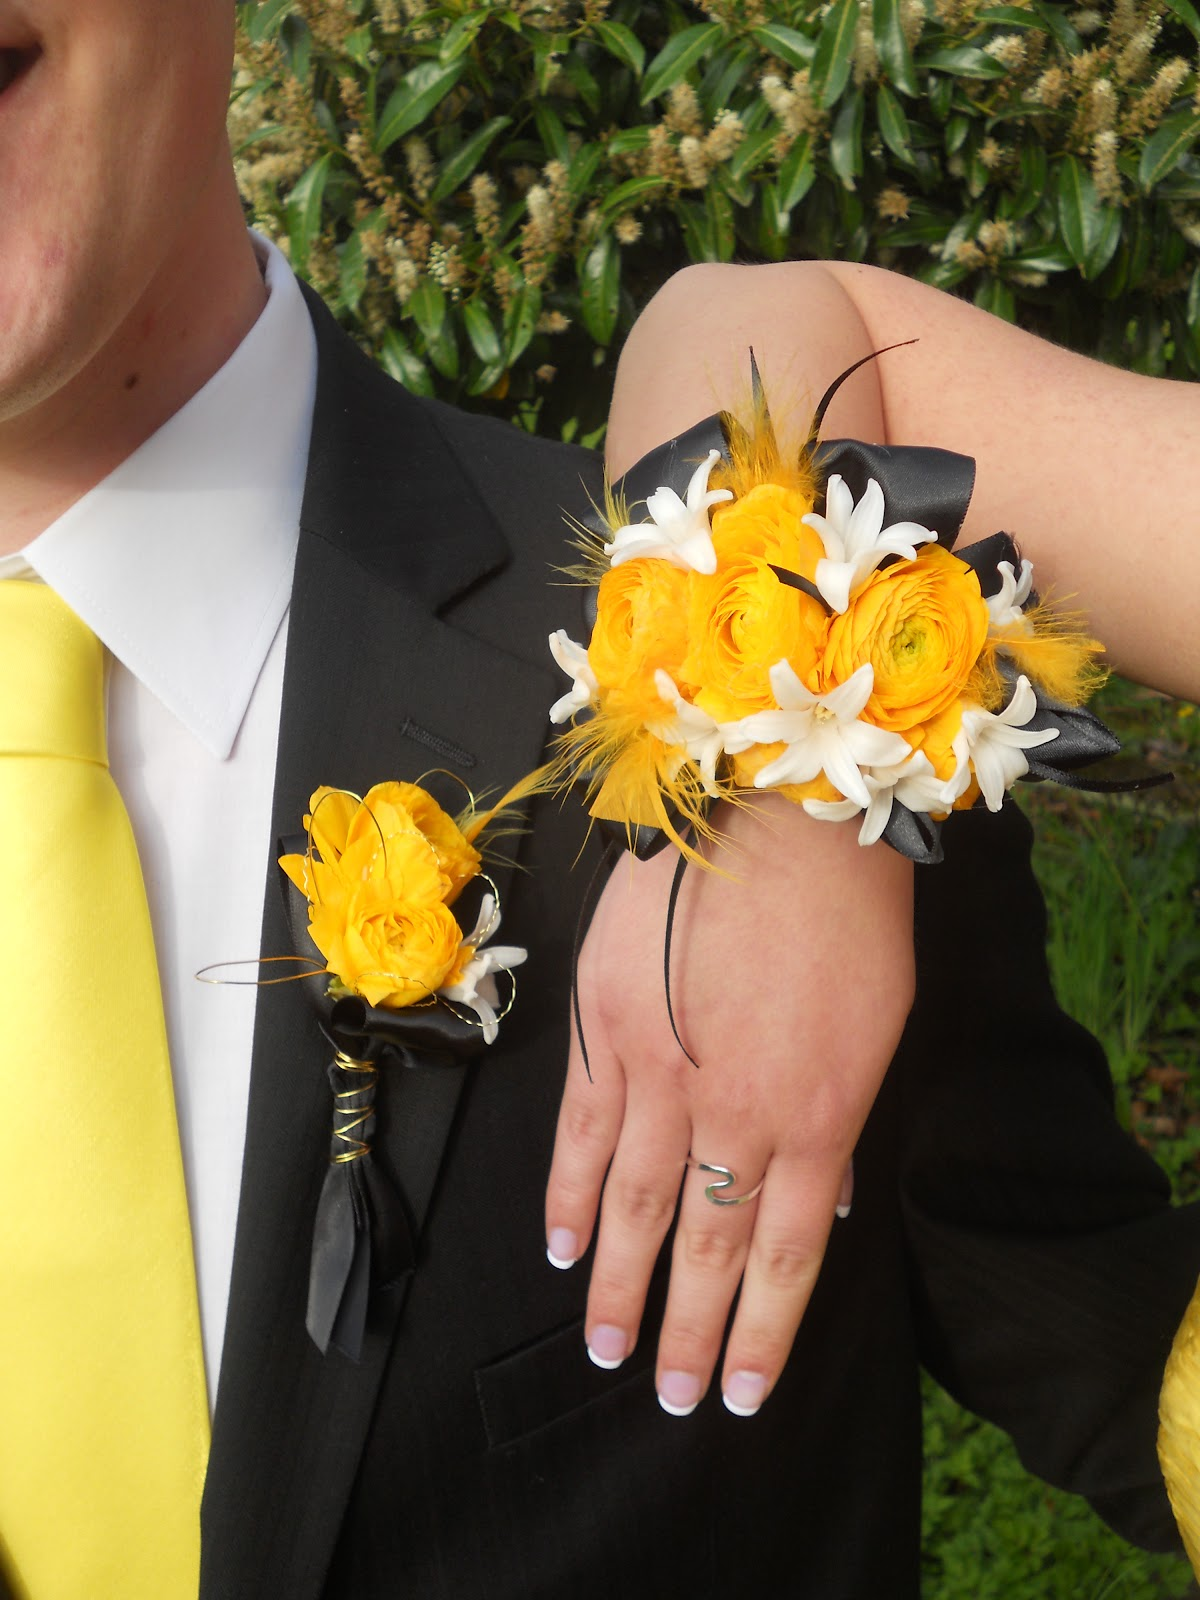 Prom Flowers May 2012